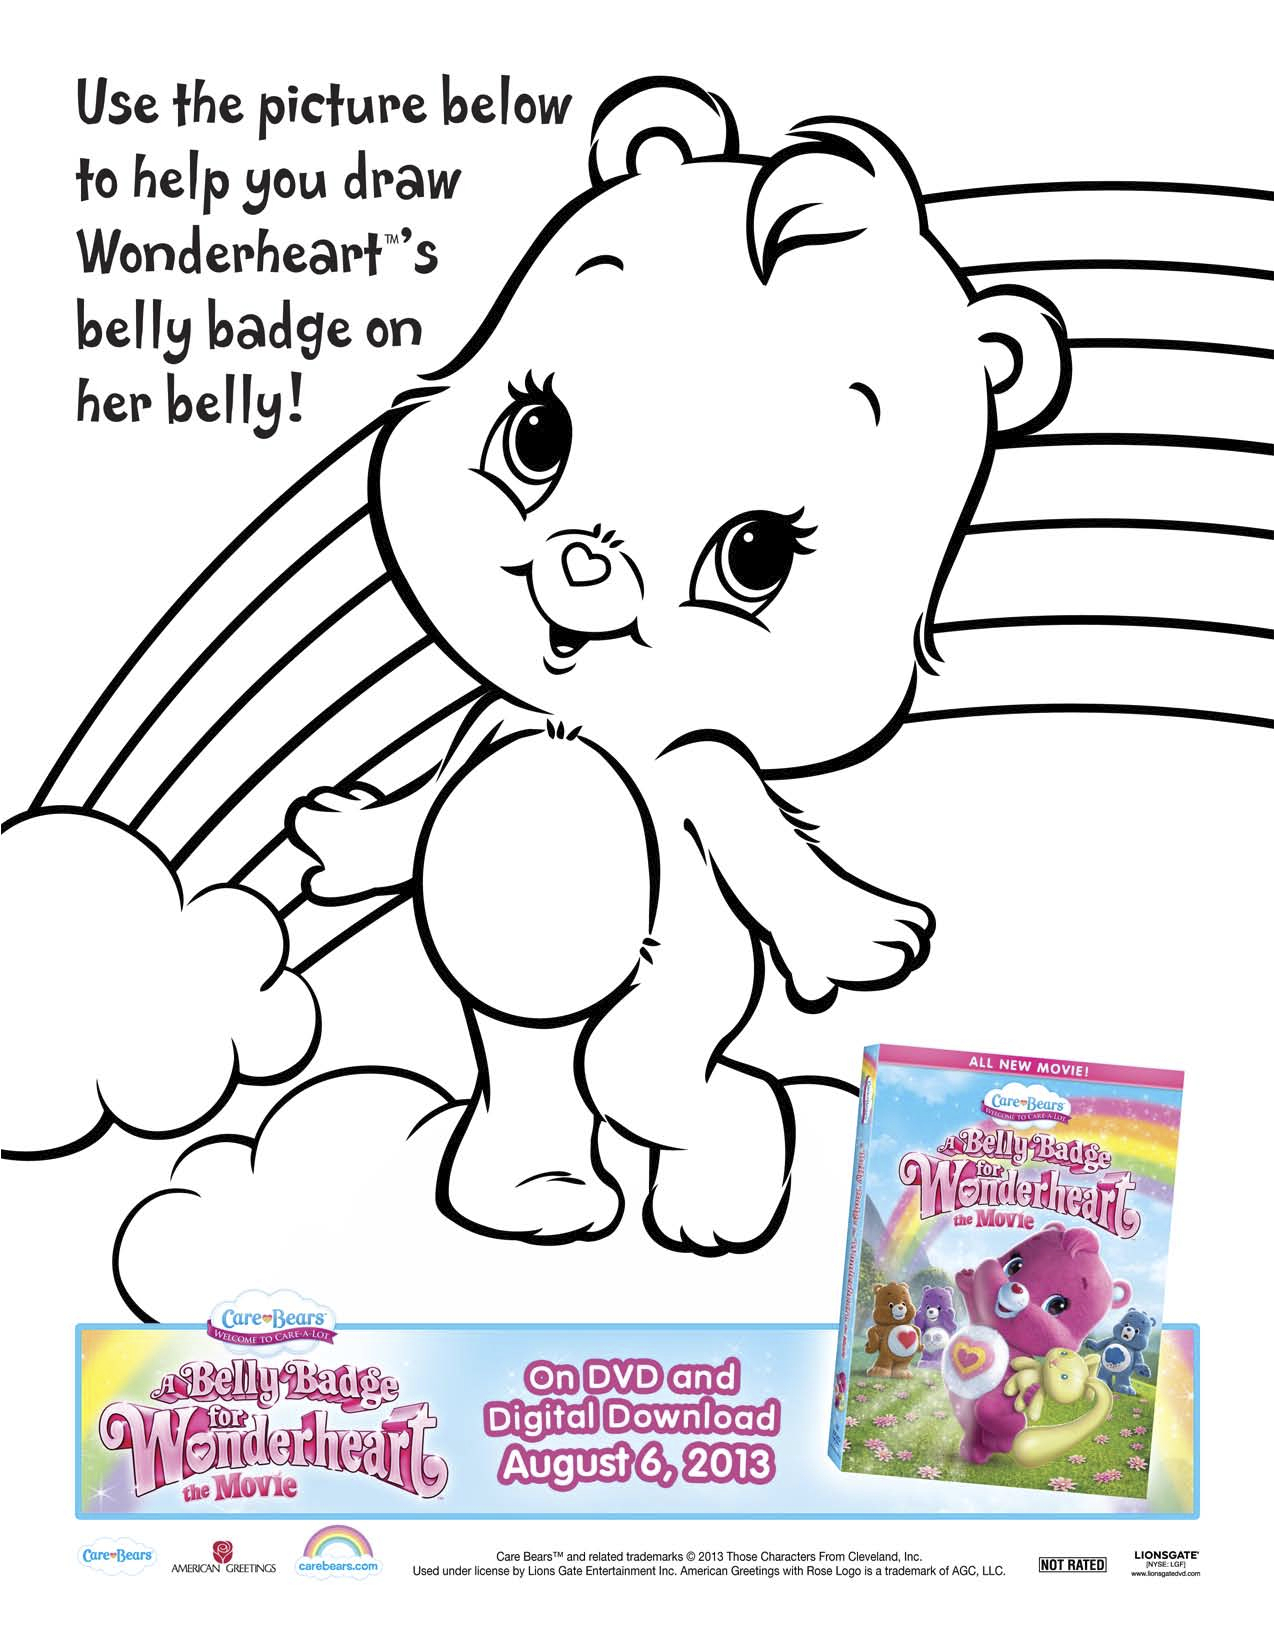 Care Bears A Belly Badge For Wonderheart Printable Coloring Page Mama Likes This